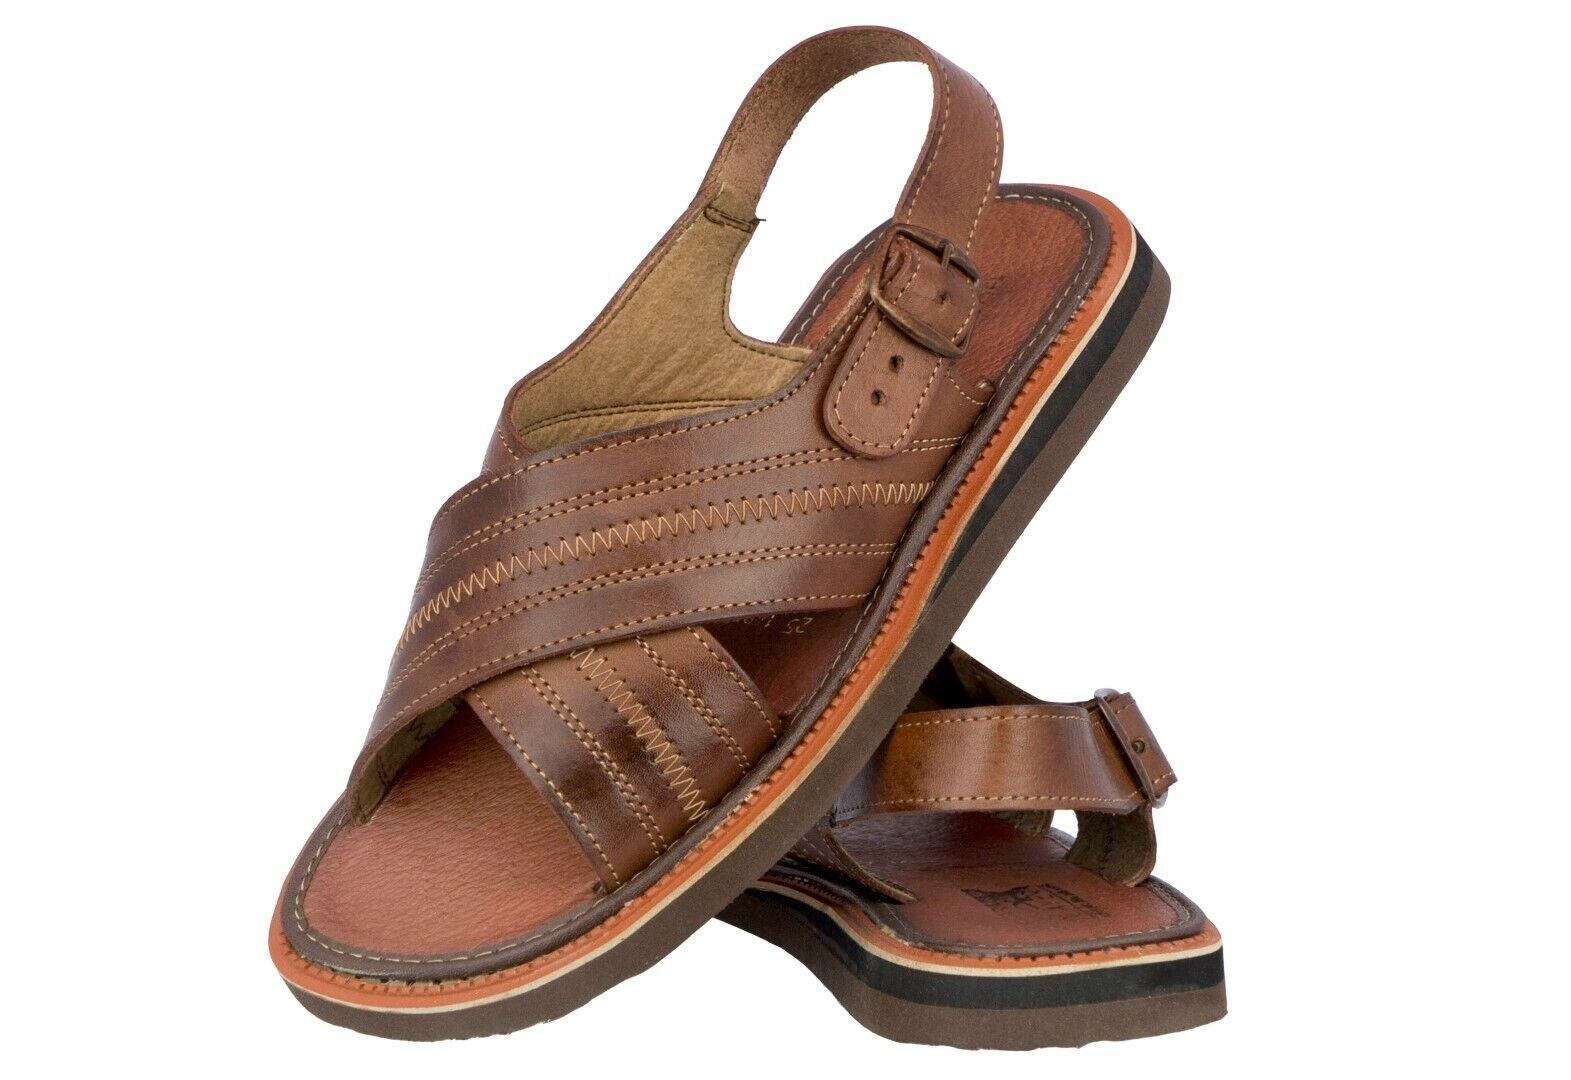 Mens Real Leather Authentic Mexican Huaraches Buckle Open Toe Sandals Chedron